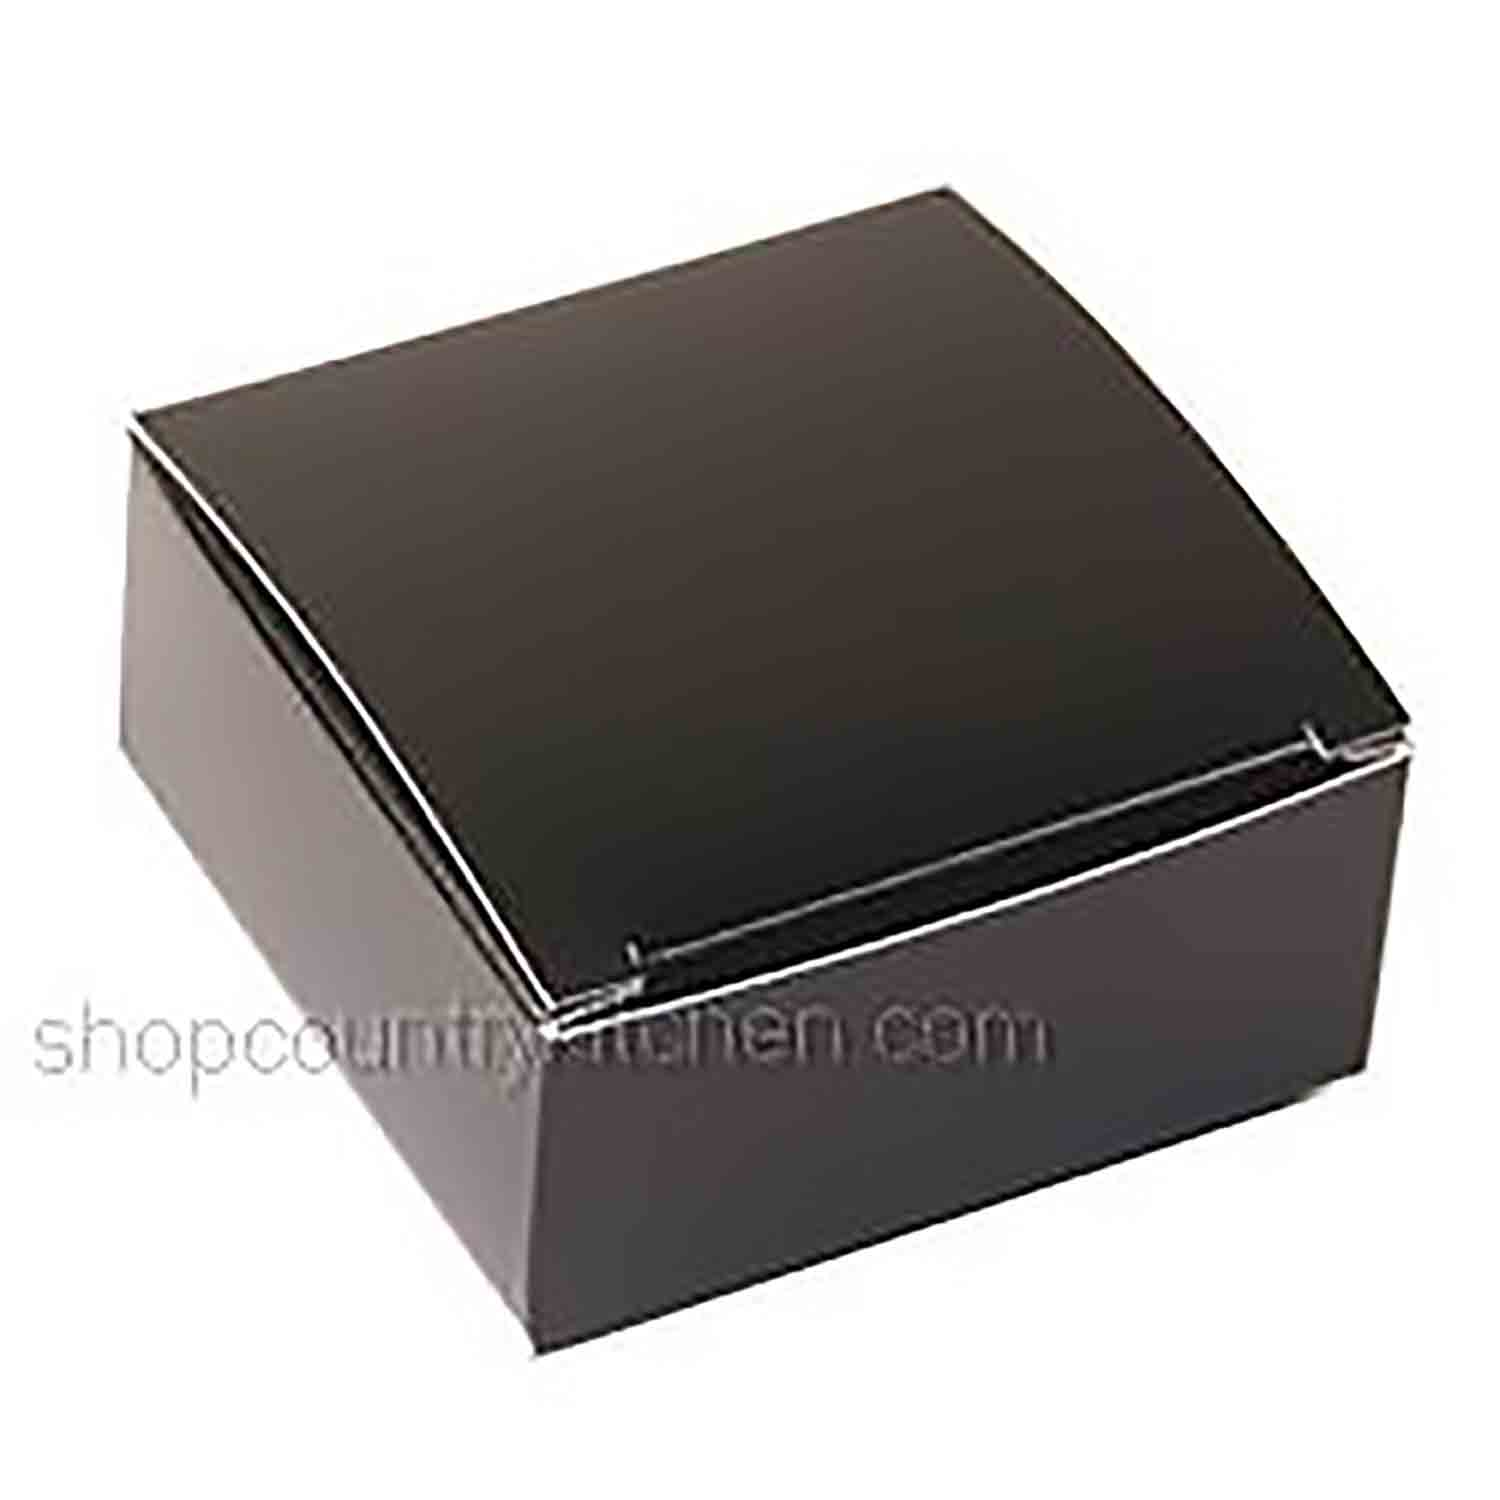 4 pc. Black Candy Box